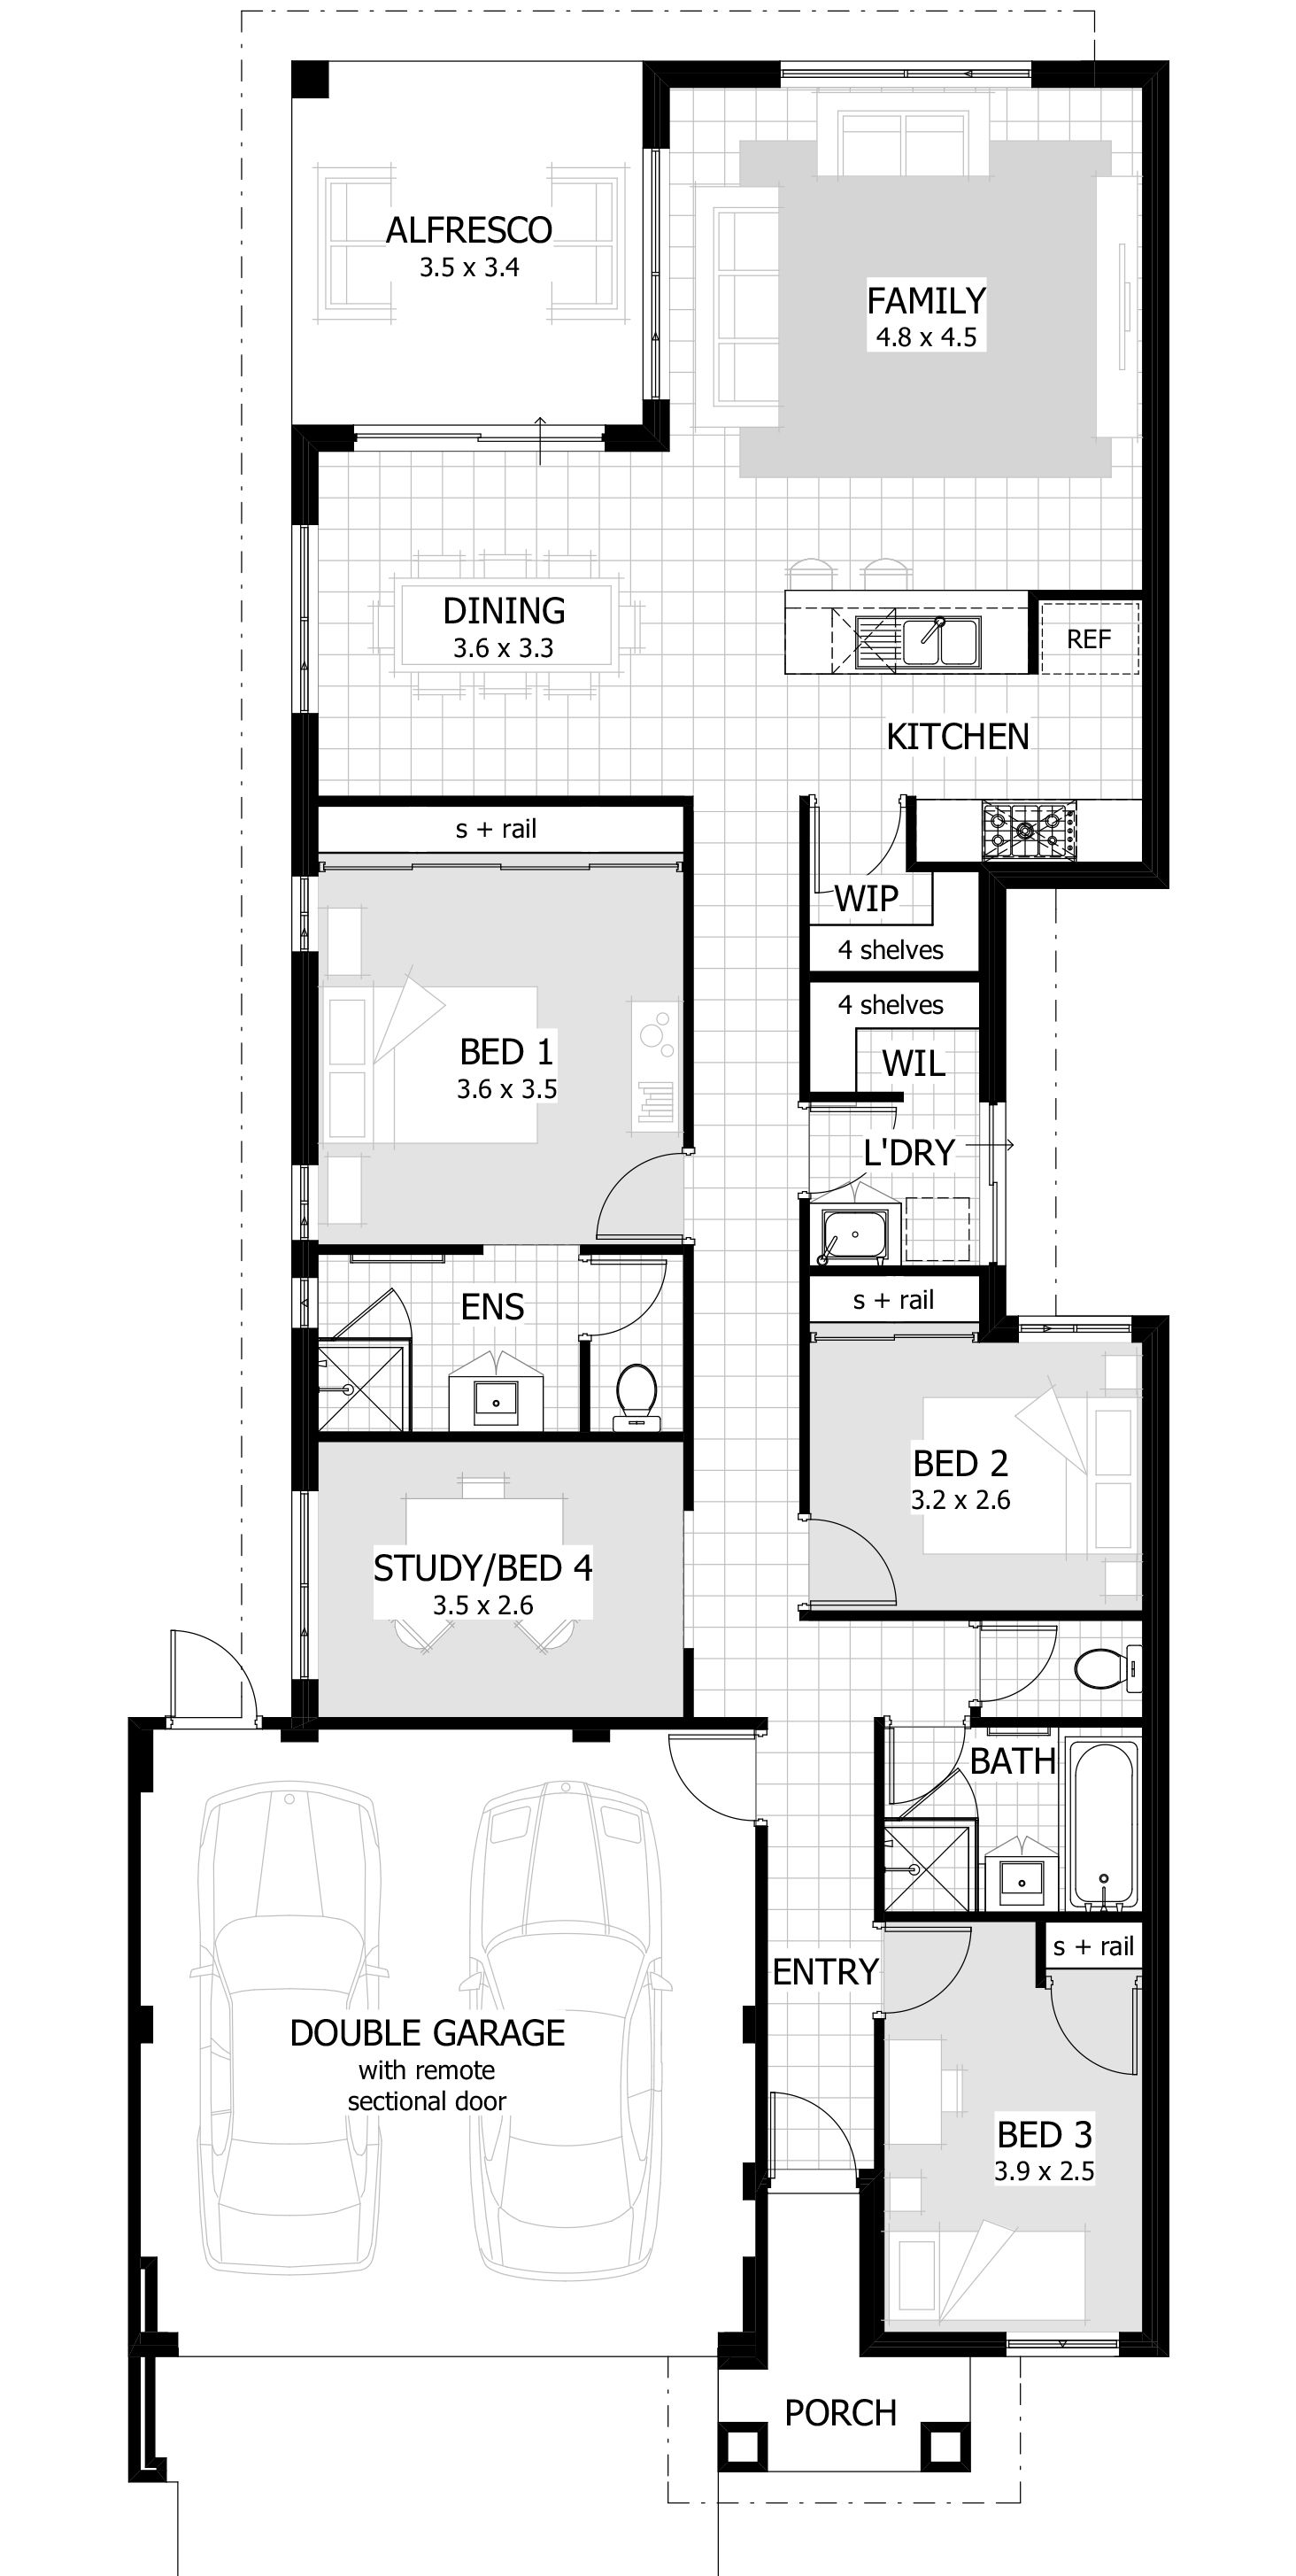 Bedroom House Plans Home Designs Celebration Homes For The - House designs floor plans